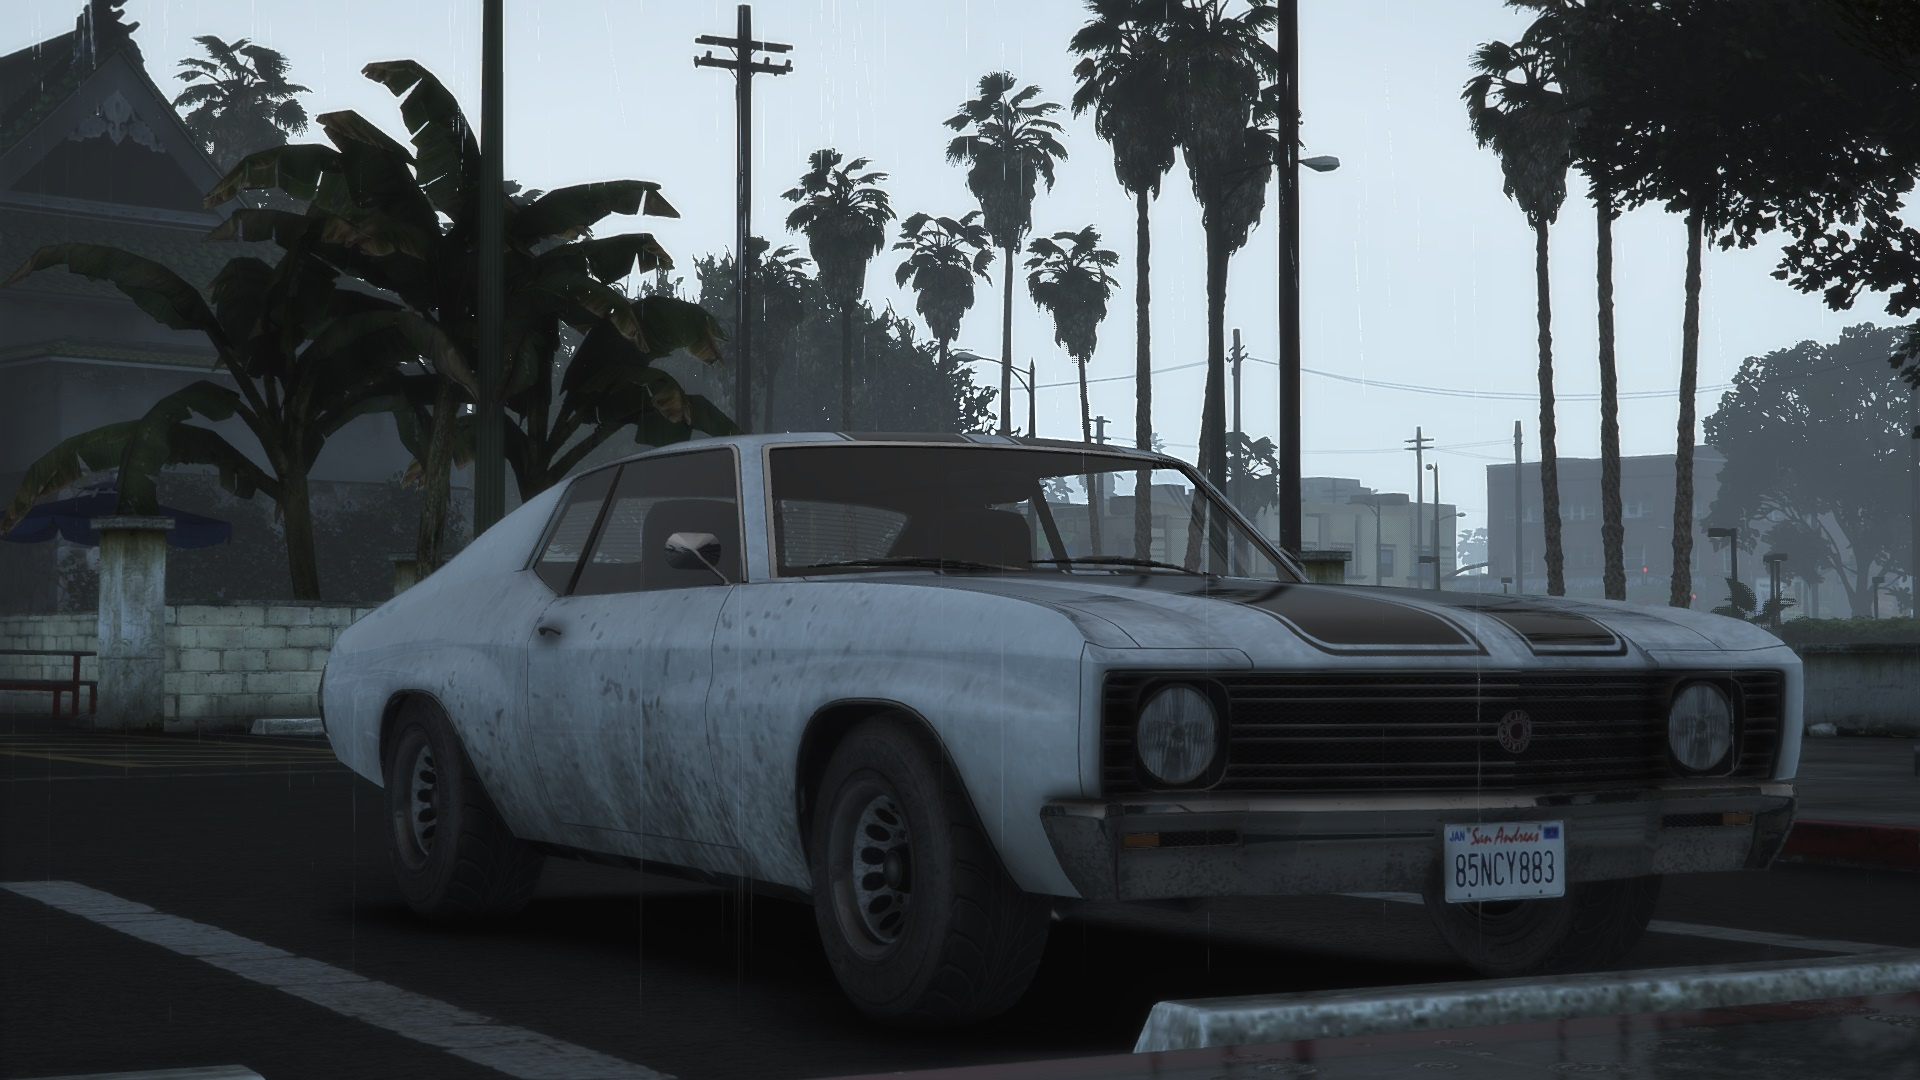 fefd56-Grand_Theft_Auto_V_Screenshot_201